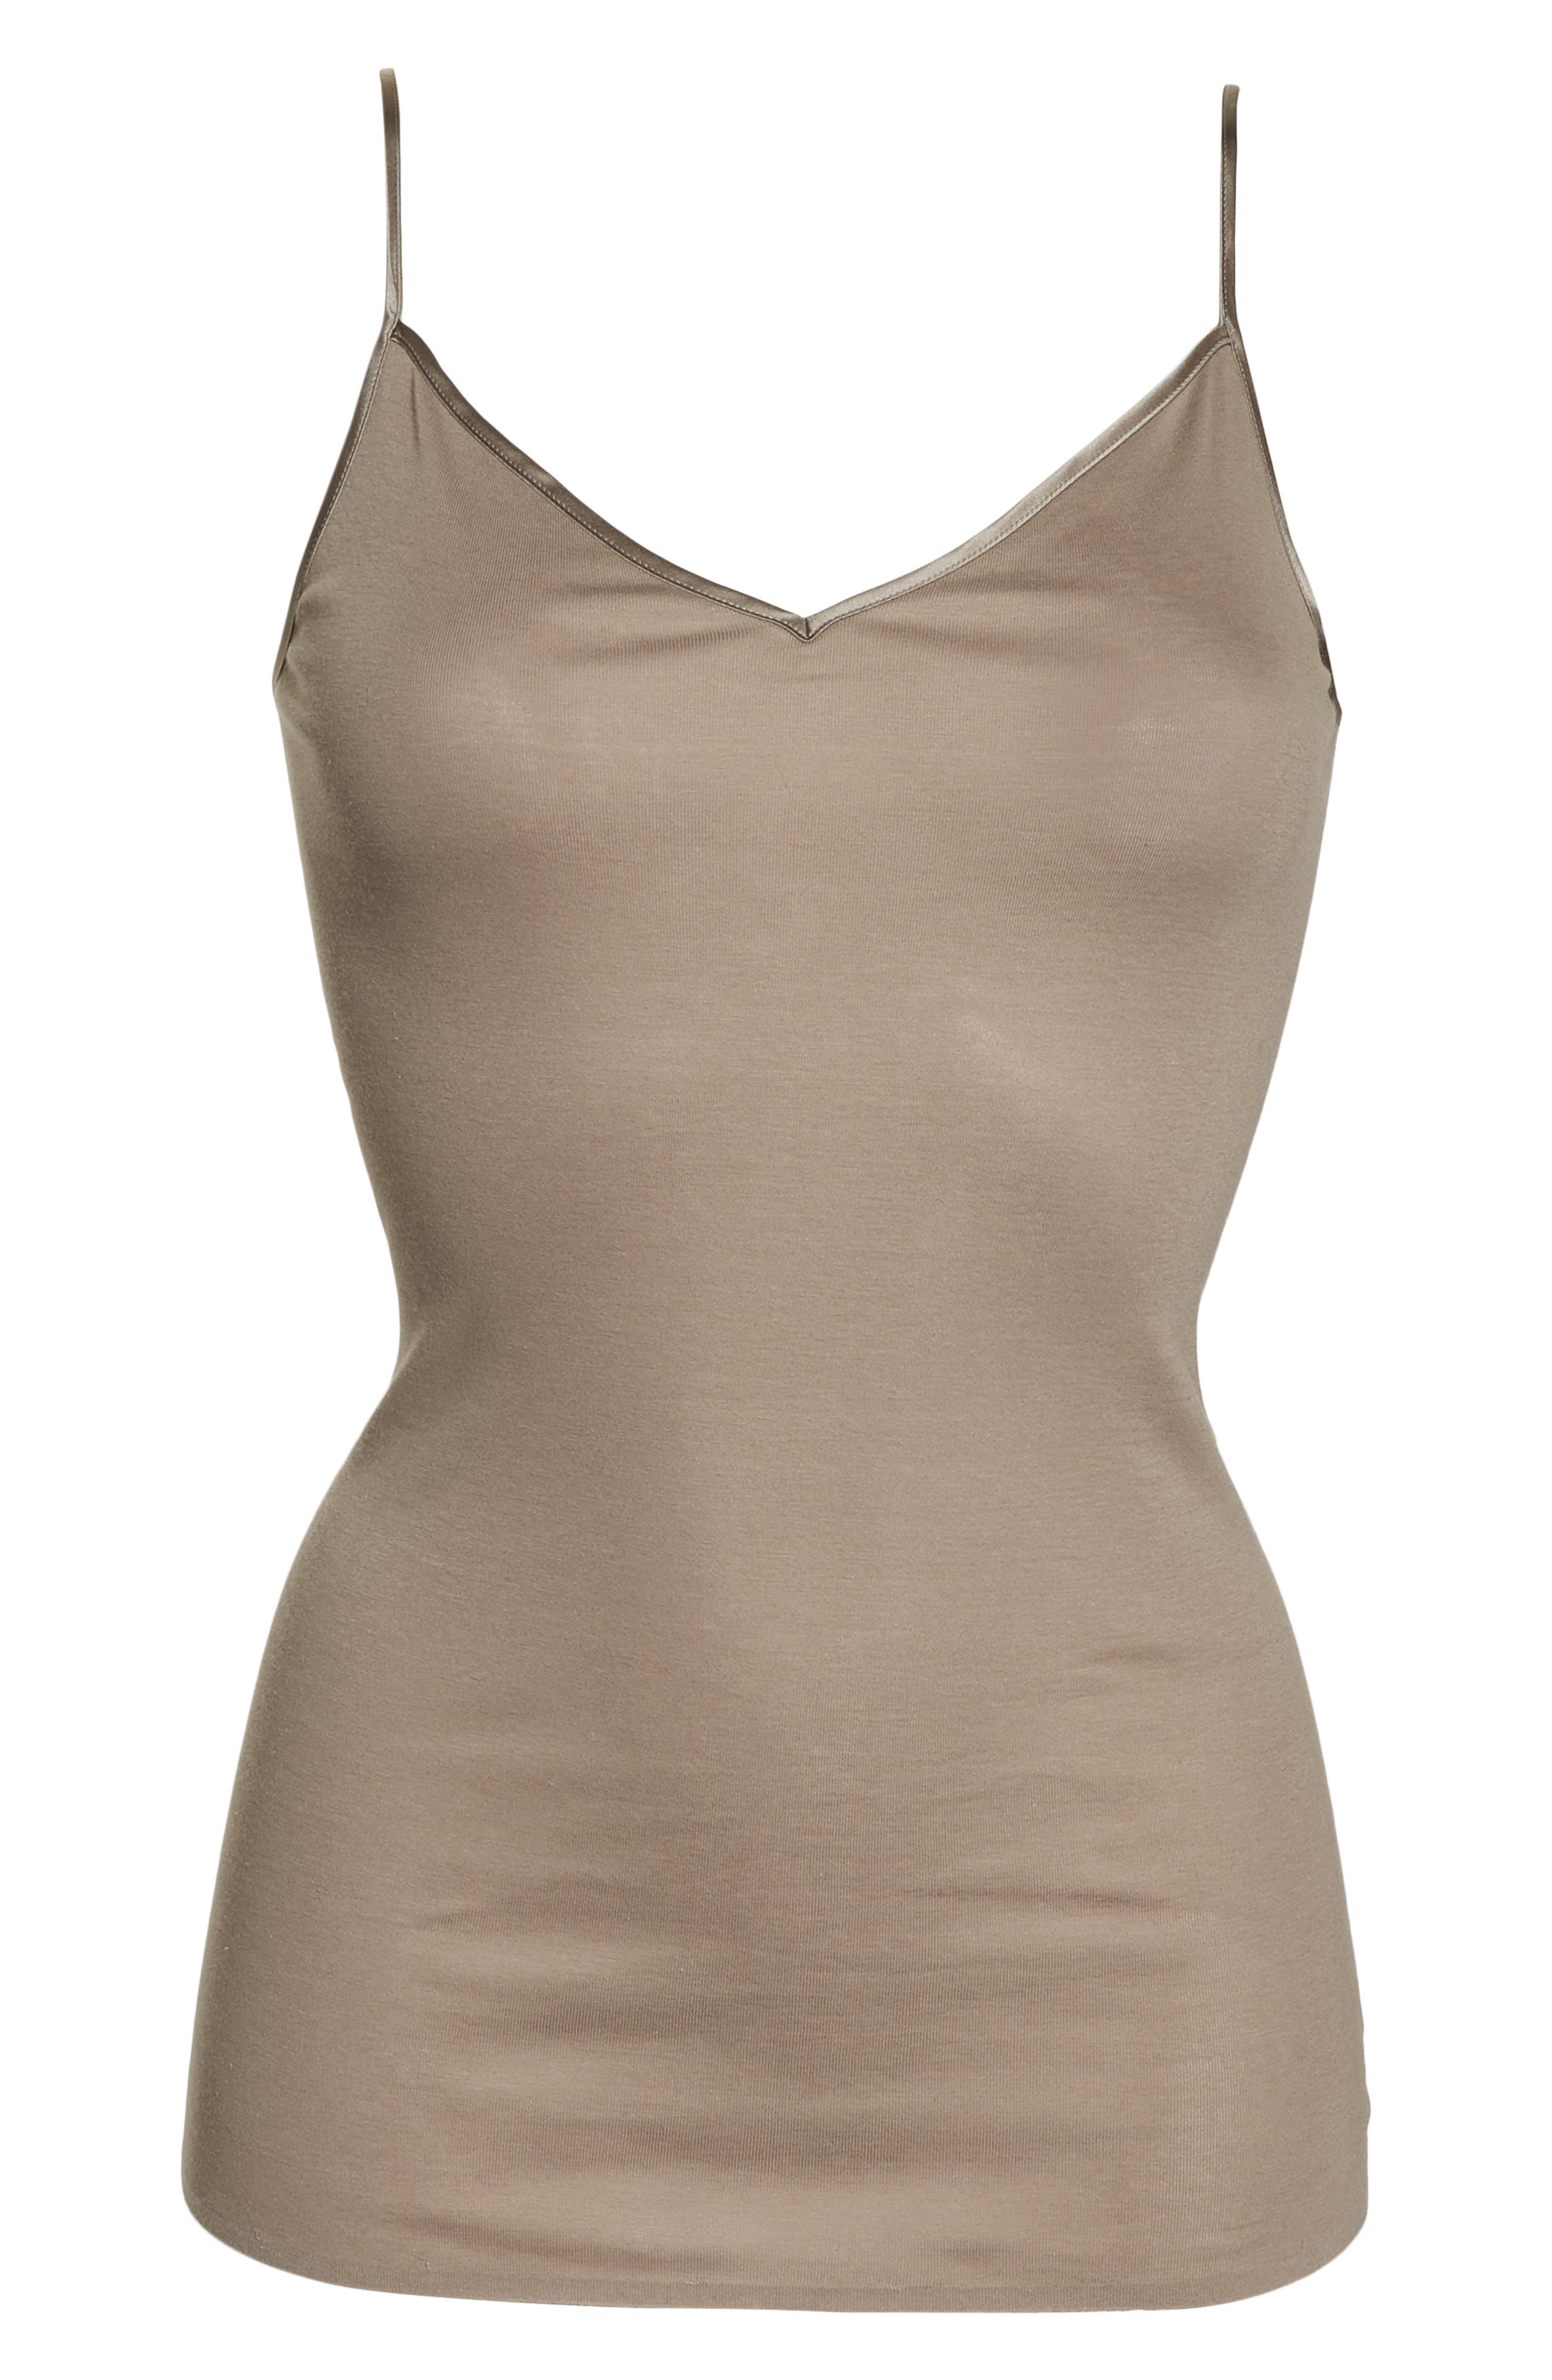 HANRO,                             Seamless V-Neck Cotton Camisole,                             Alternate thumbnail 6, color,                             VINTAGE TAUPE 1871